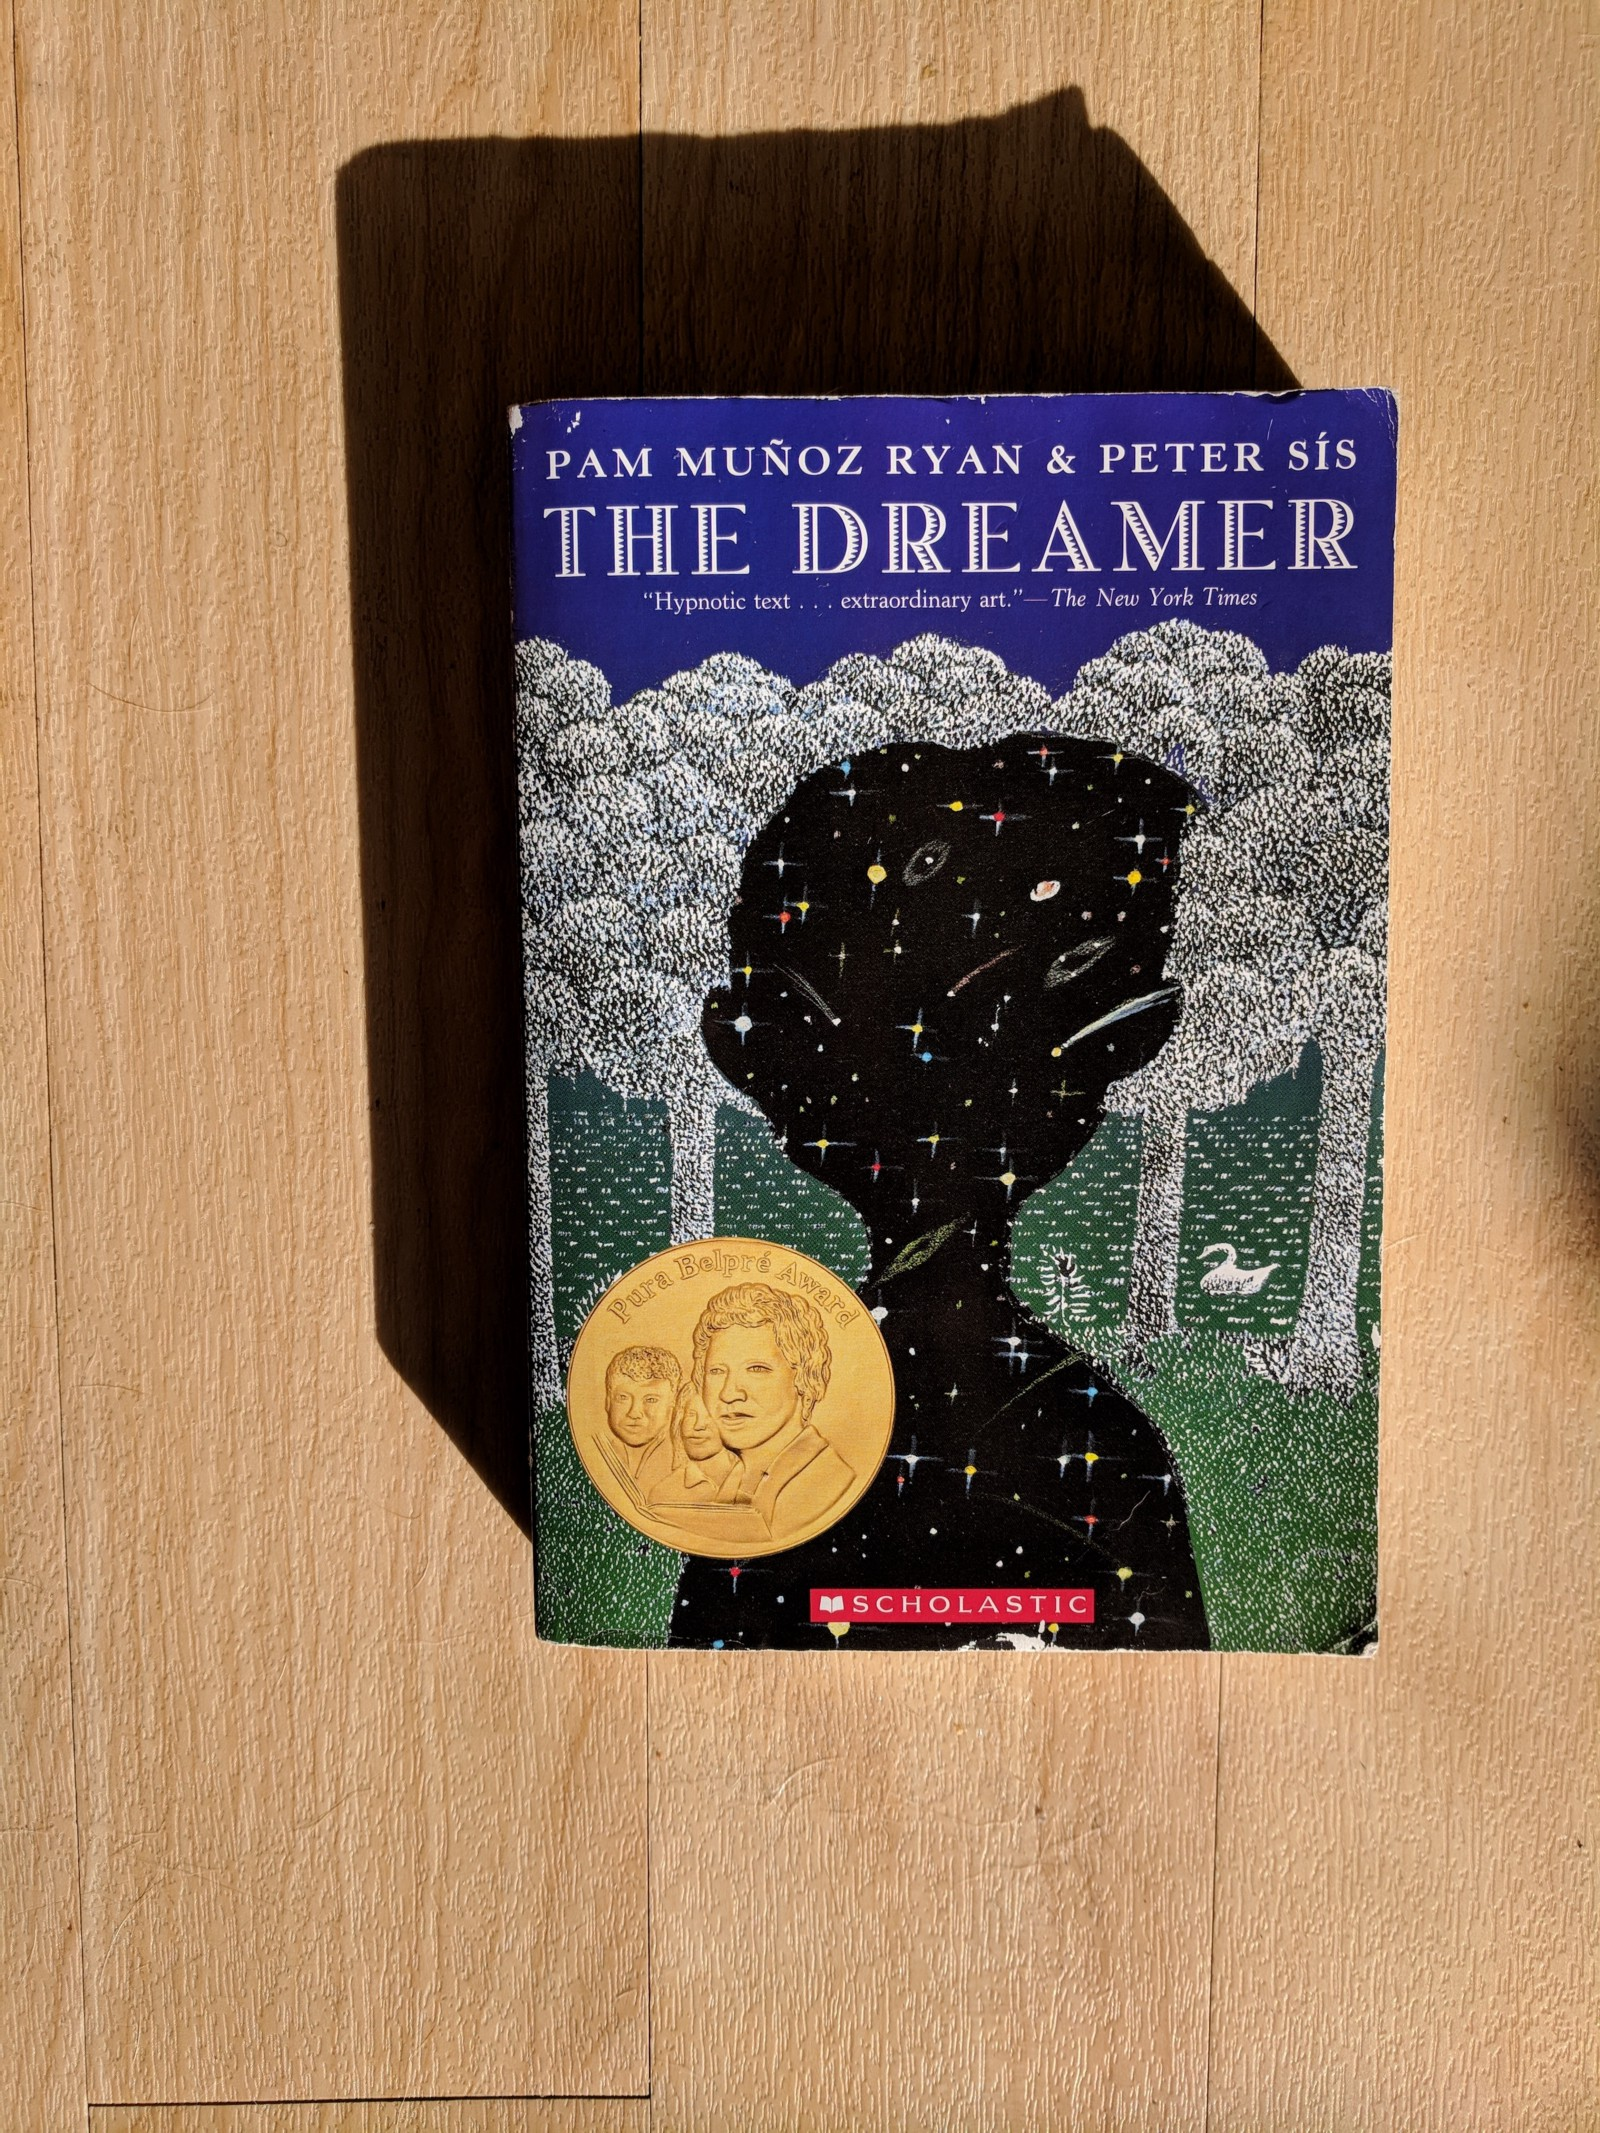 The Dreamer By Pam Munoz Ryan Illustrated By Peter Sis